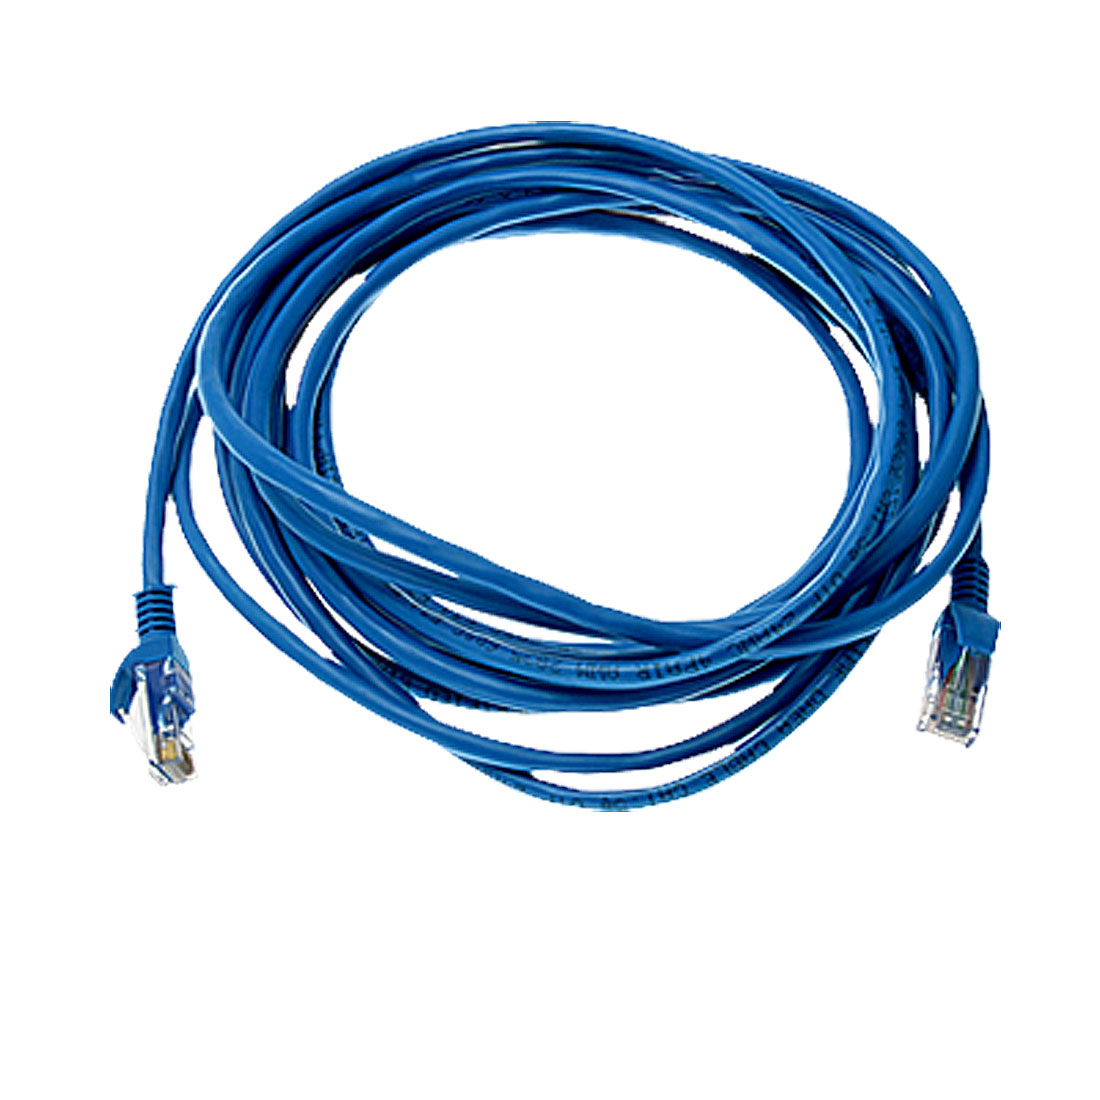 16 ft Feet 4.9M RJ45 CAT5E LAN Network Cable Blue for Ethernet Router Switch